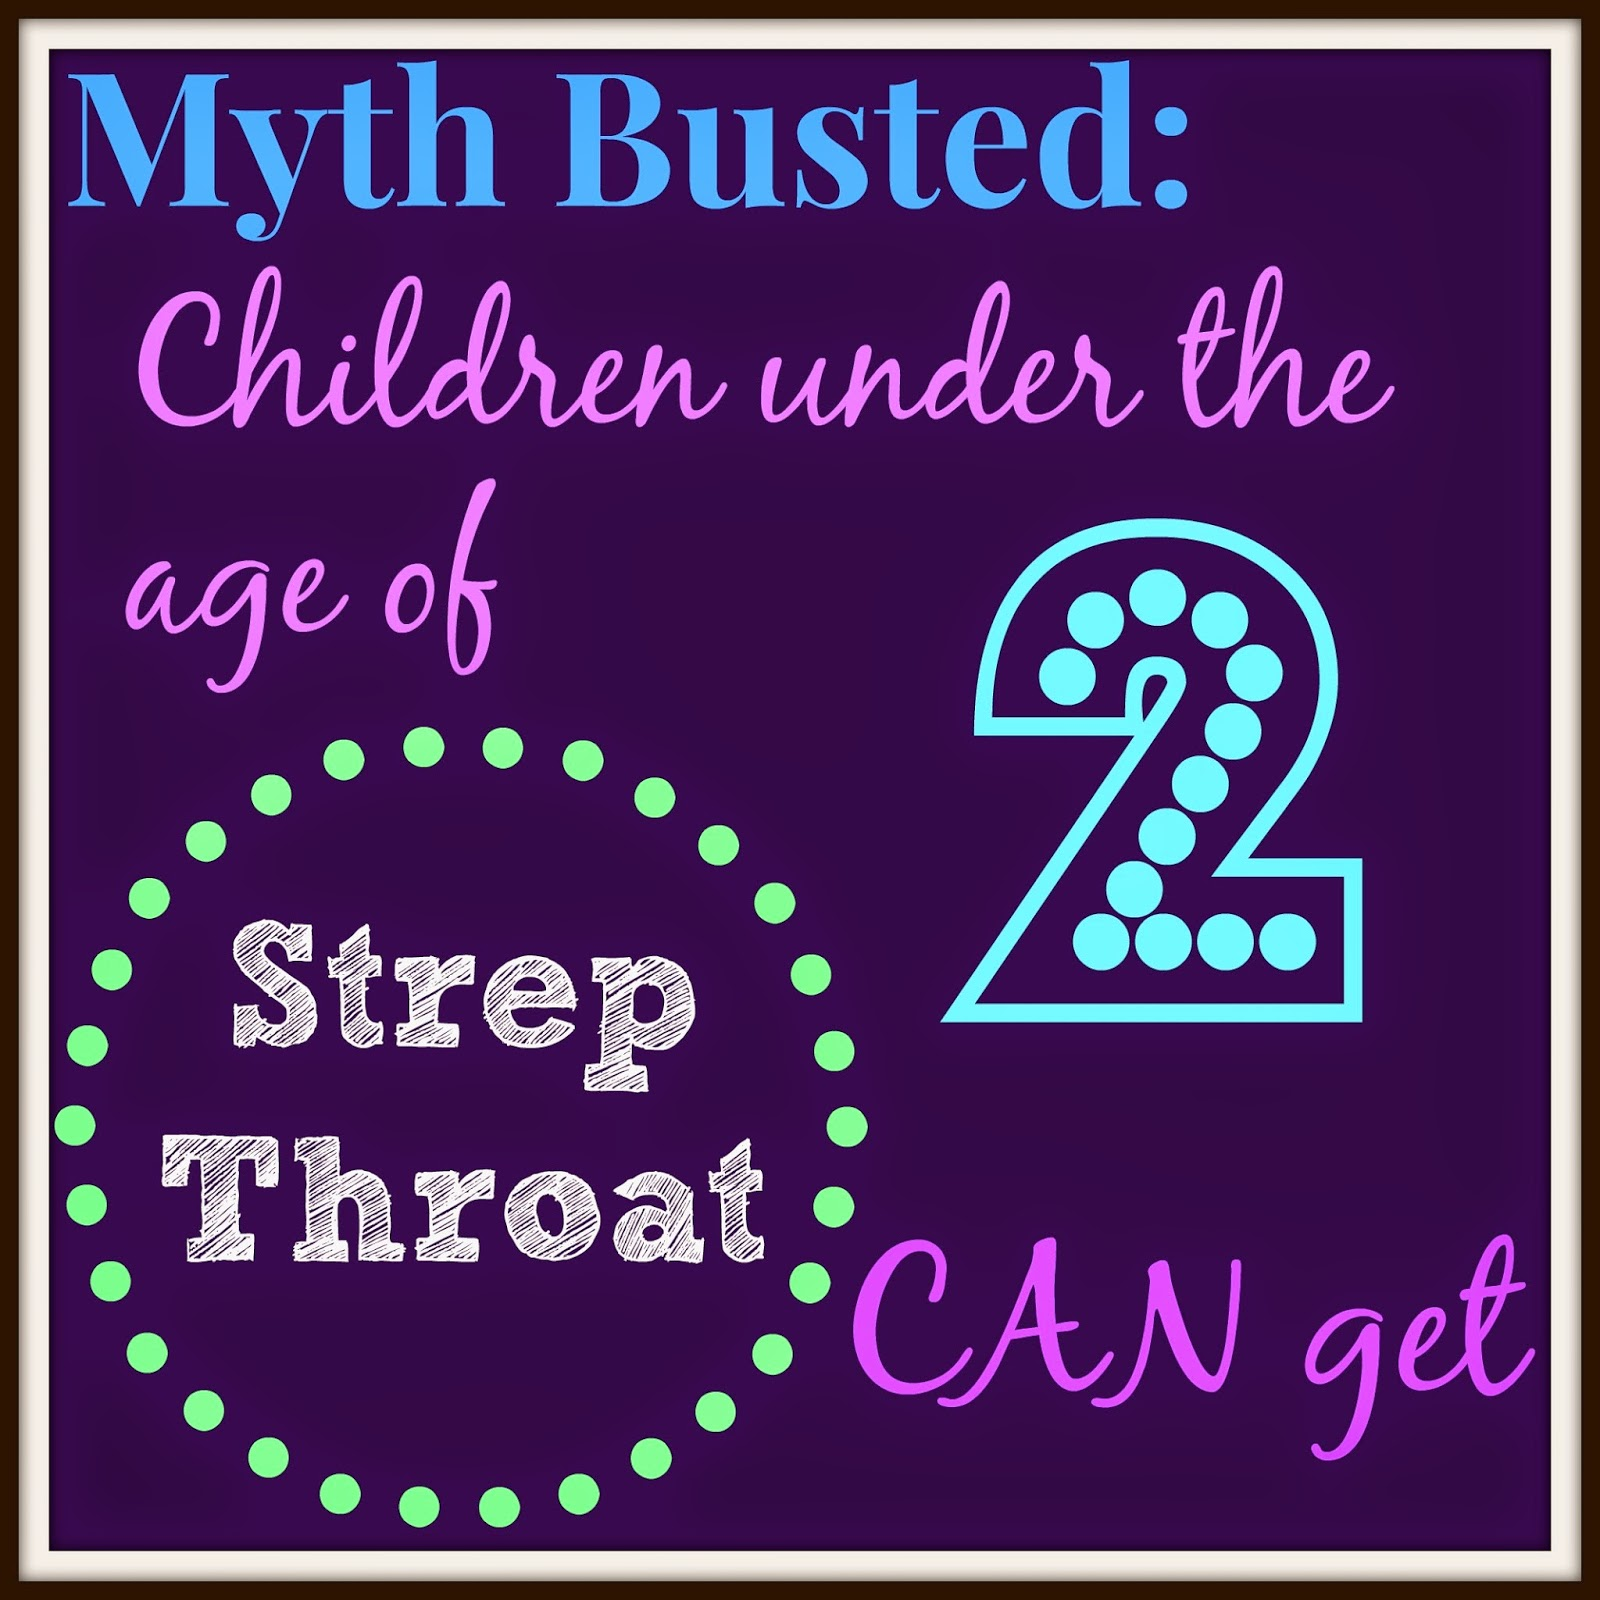 Myth Busting: Children under 2 CAN get Strep Throat.  Can a child under 2 get Strep Throat?  Strep Throat in toddlers.  Strep throat symptoms in kids.